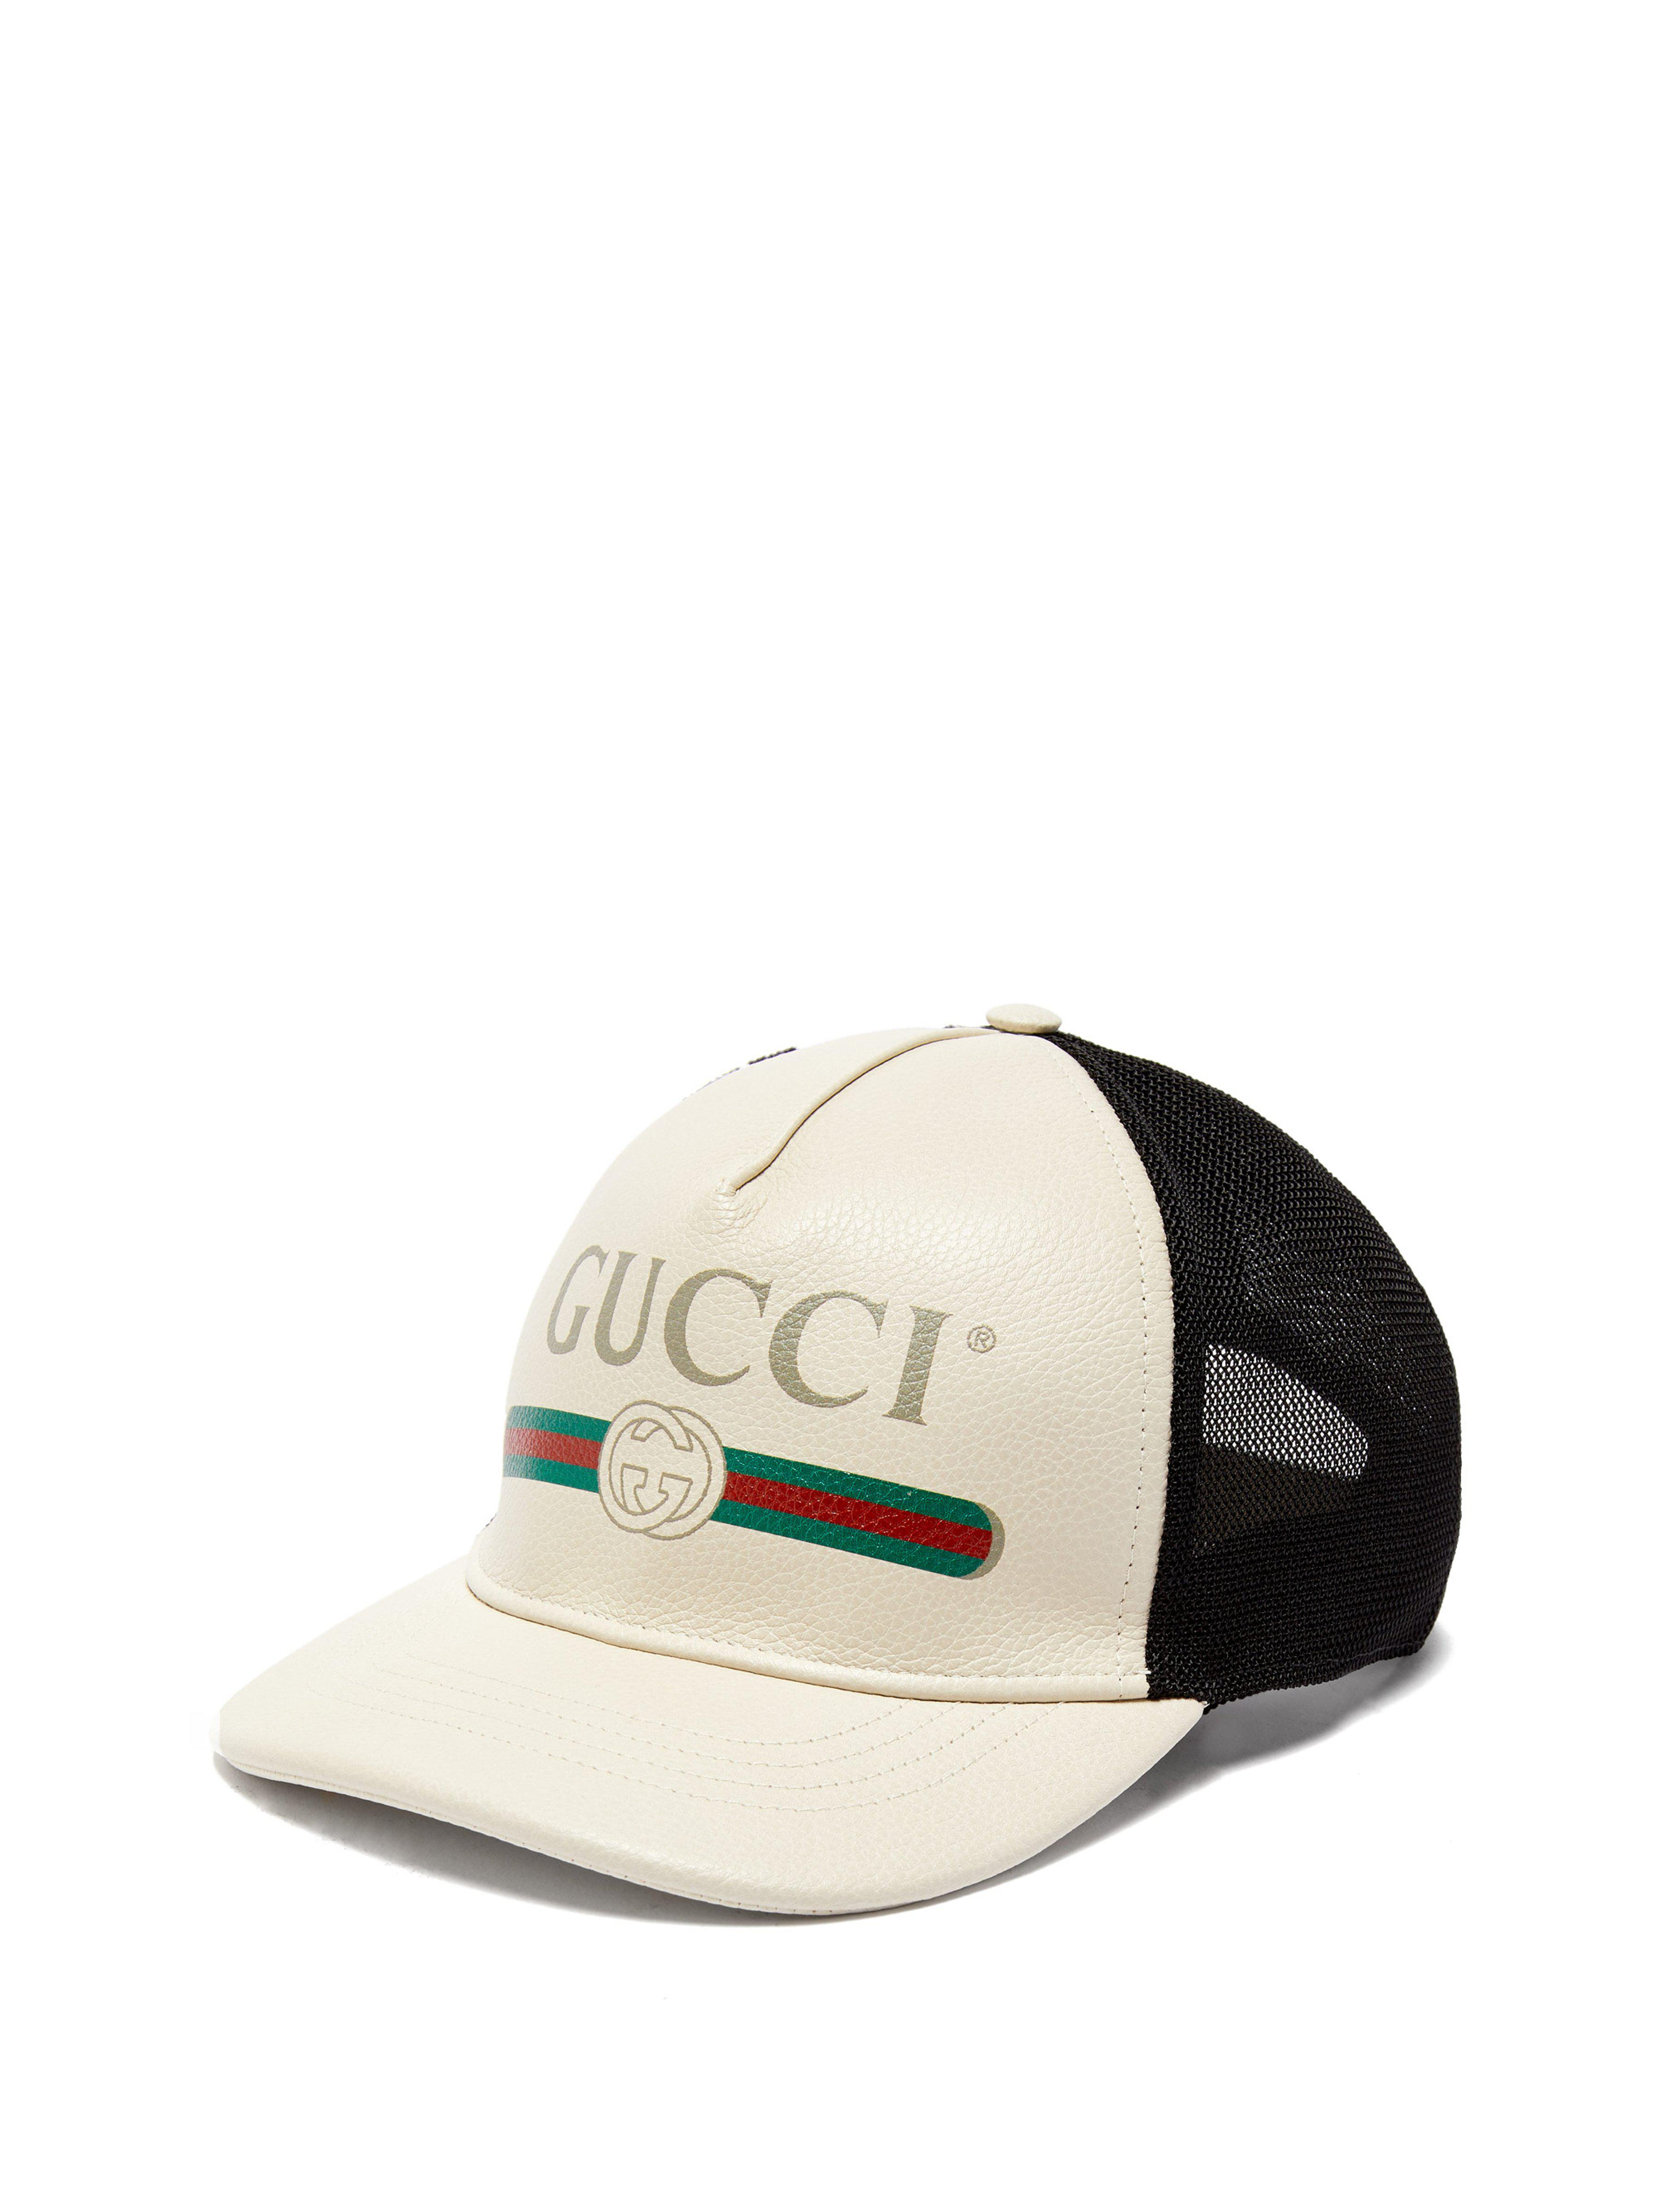 a7b06bab5e6 Gucci - Black Vintage Logo Leather And Mesh Cap for Men - Lyst. View  fullscreen